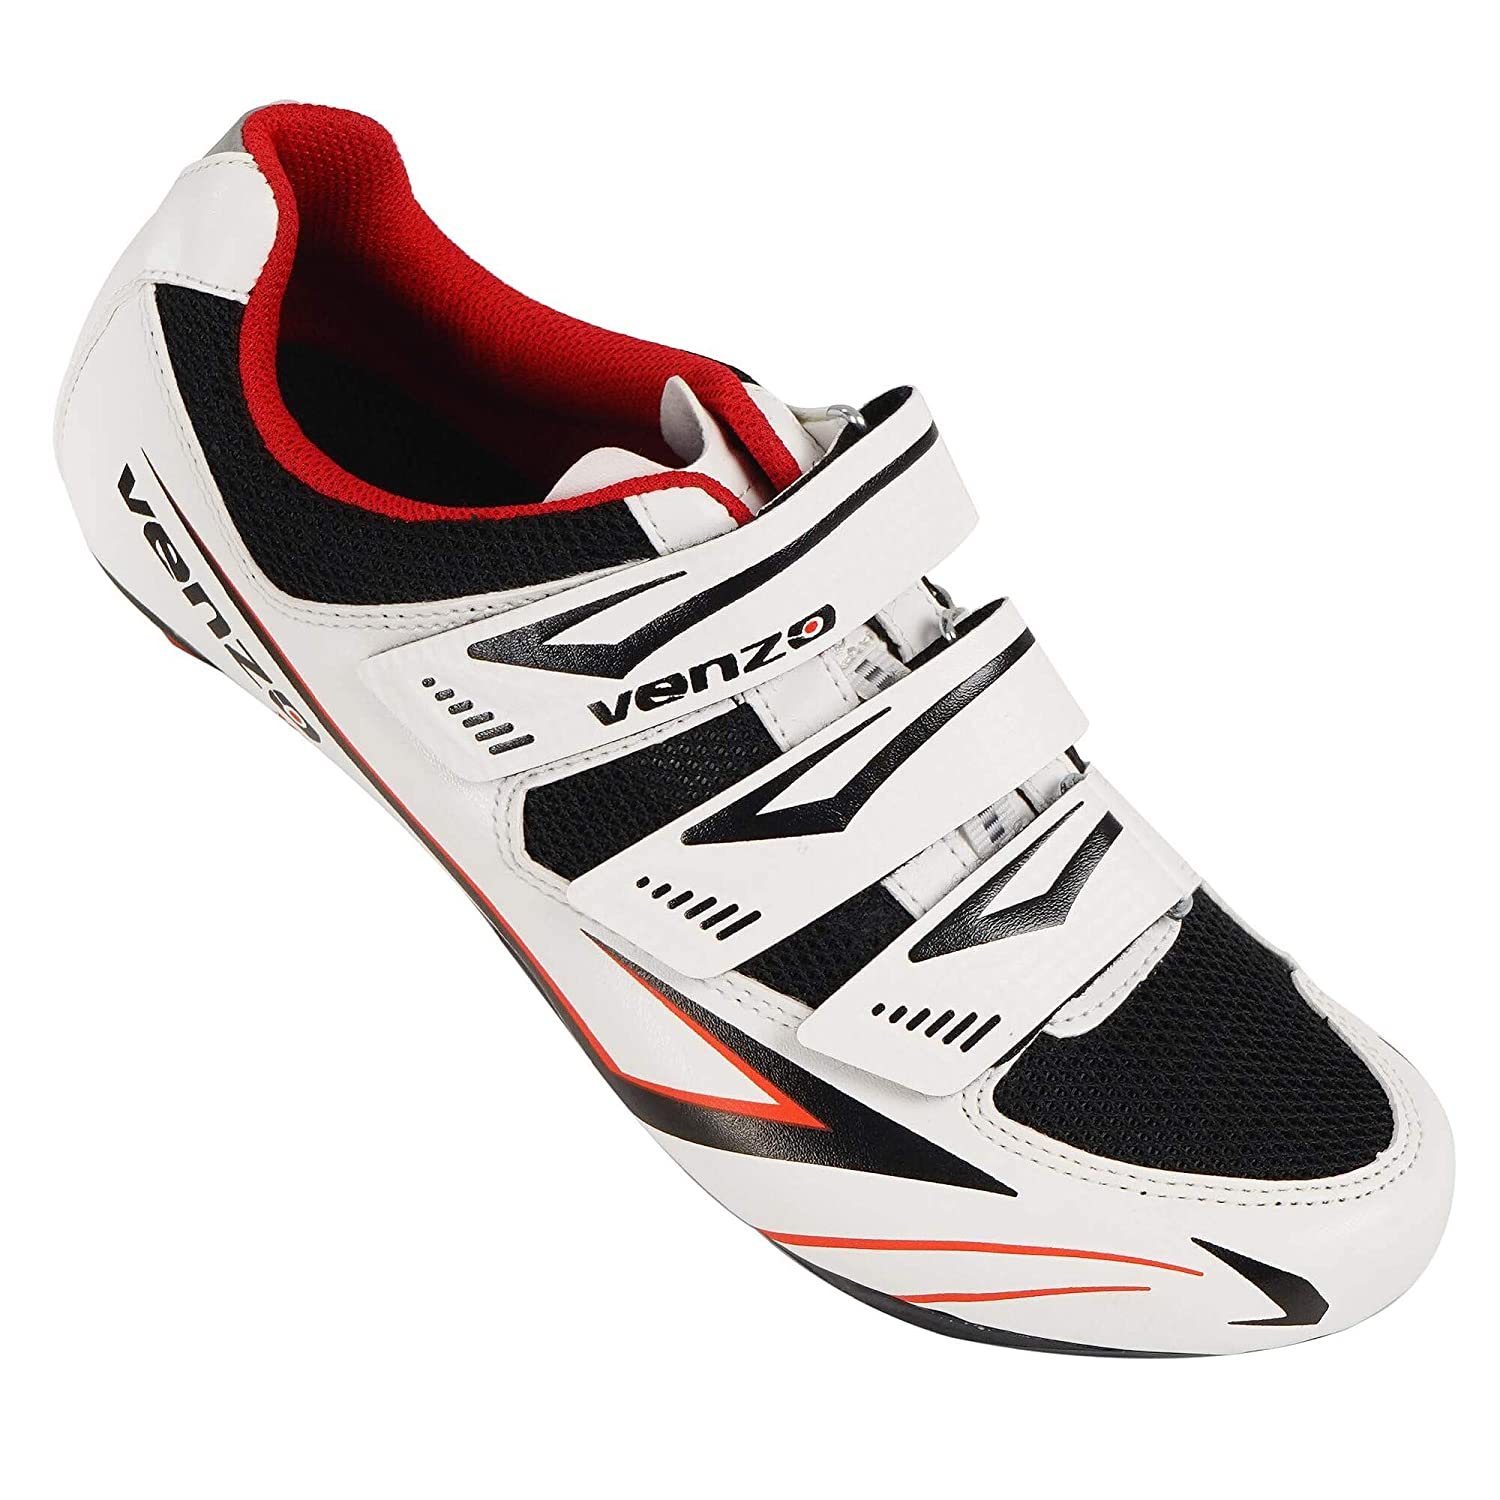 10 Top 10 Best Shoes for Cycling and Walking in 2016 Reviews